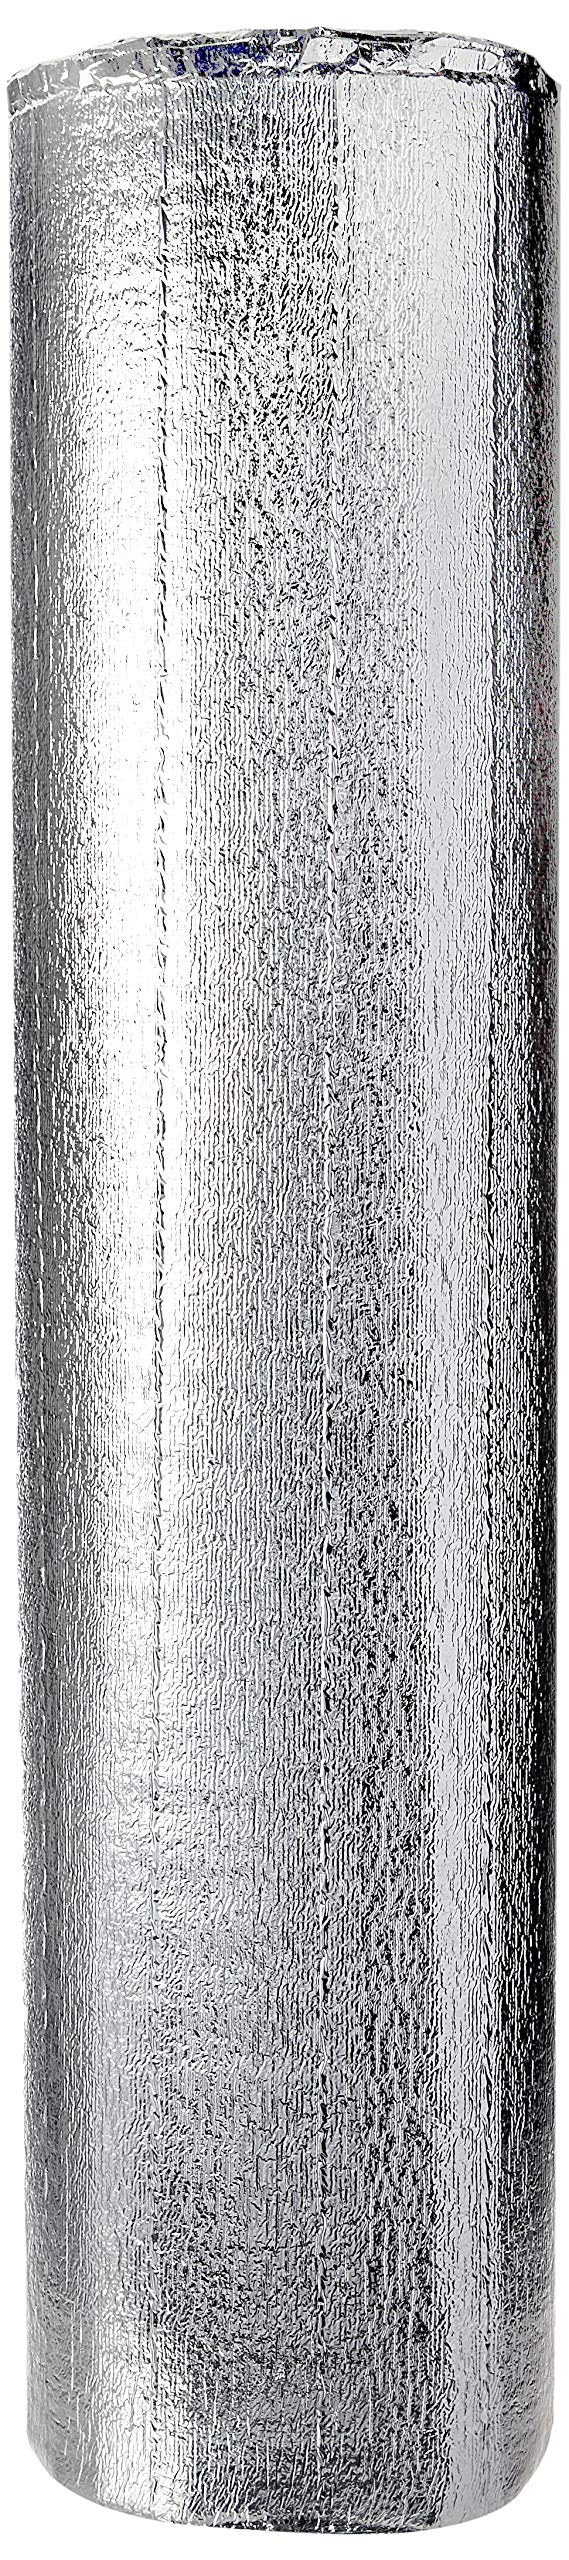 Premium Heat Reflective Insulation (48'' x 50') Reflective Aluminum Insulation Roll with Foam for Walls, Attics, Air Ducts, Windows, Radiators. HVAC and Garages